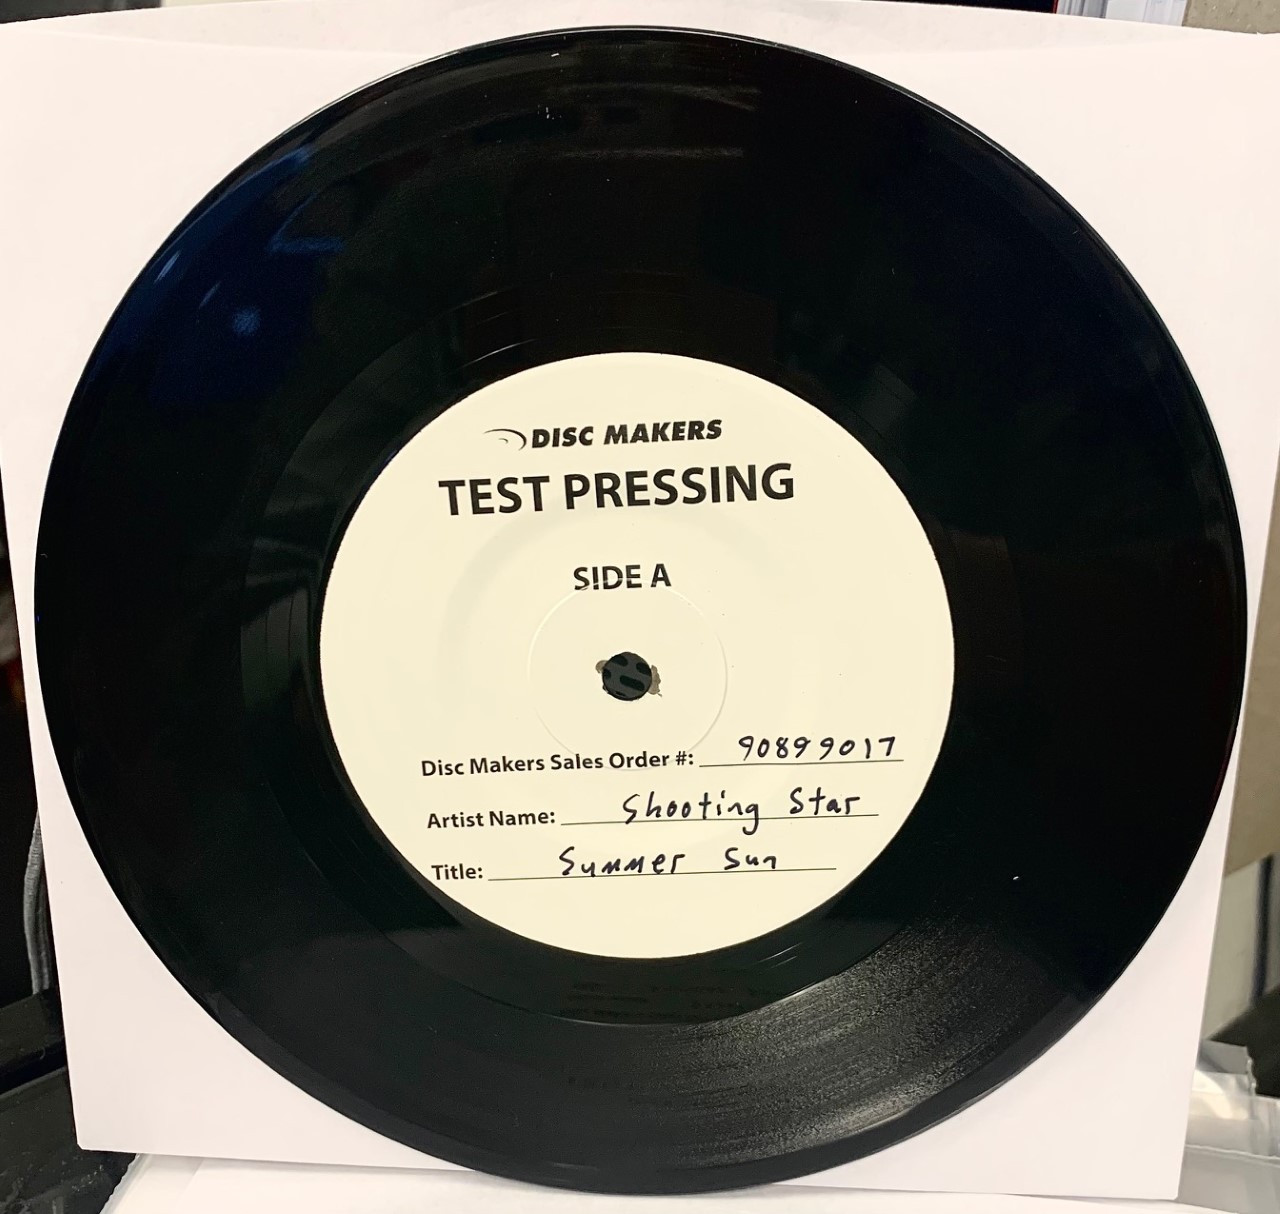 Summer Sun b/w When You're Young by Shooting Star vinyl single test pressing available now.